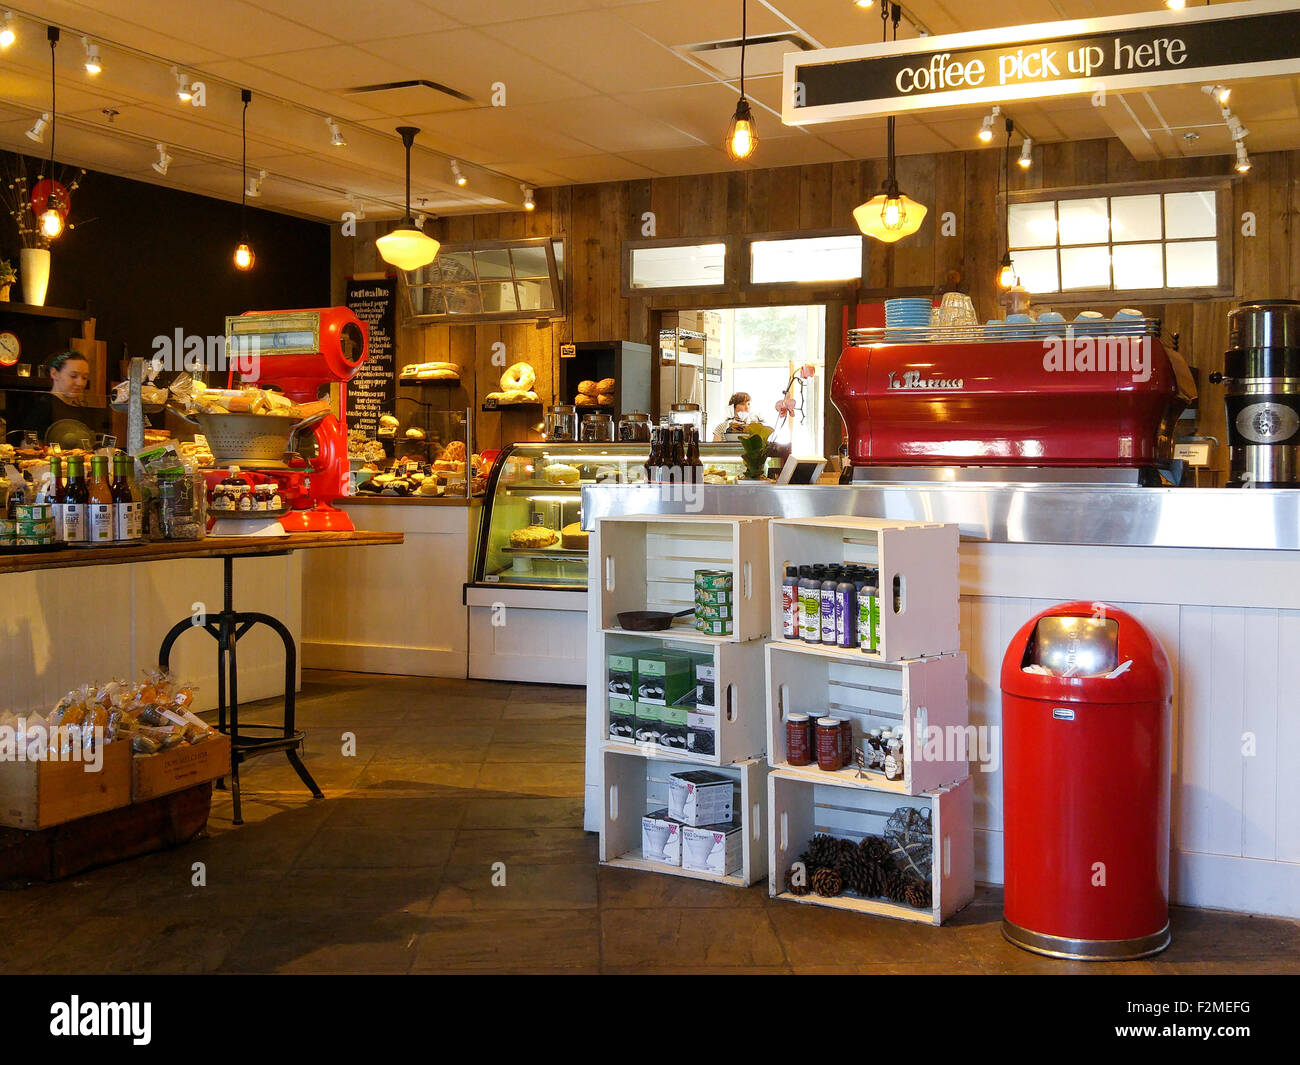 Inside Of An Old Fashioned Coffee Shop Bakery With Retro